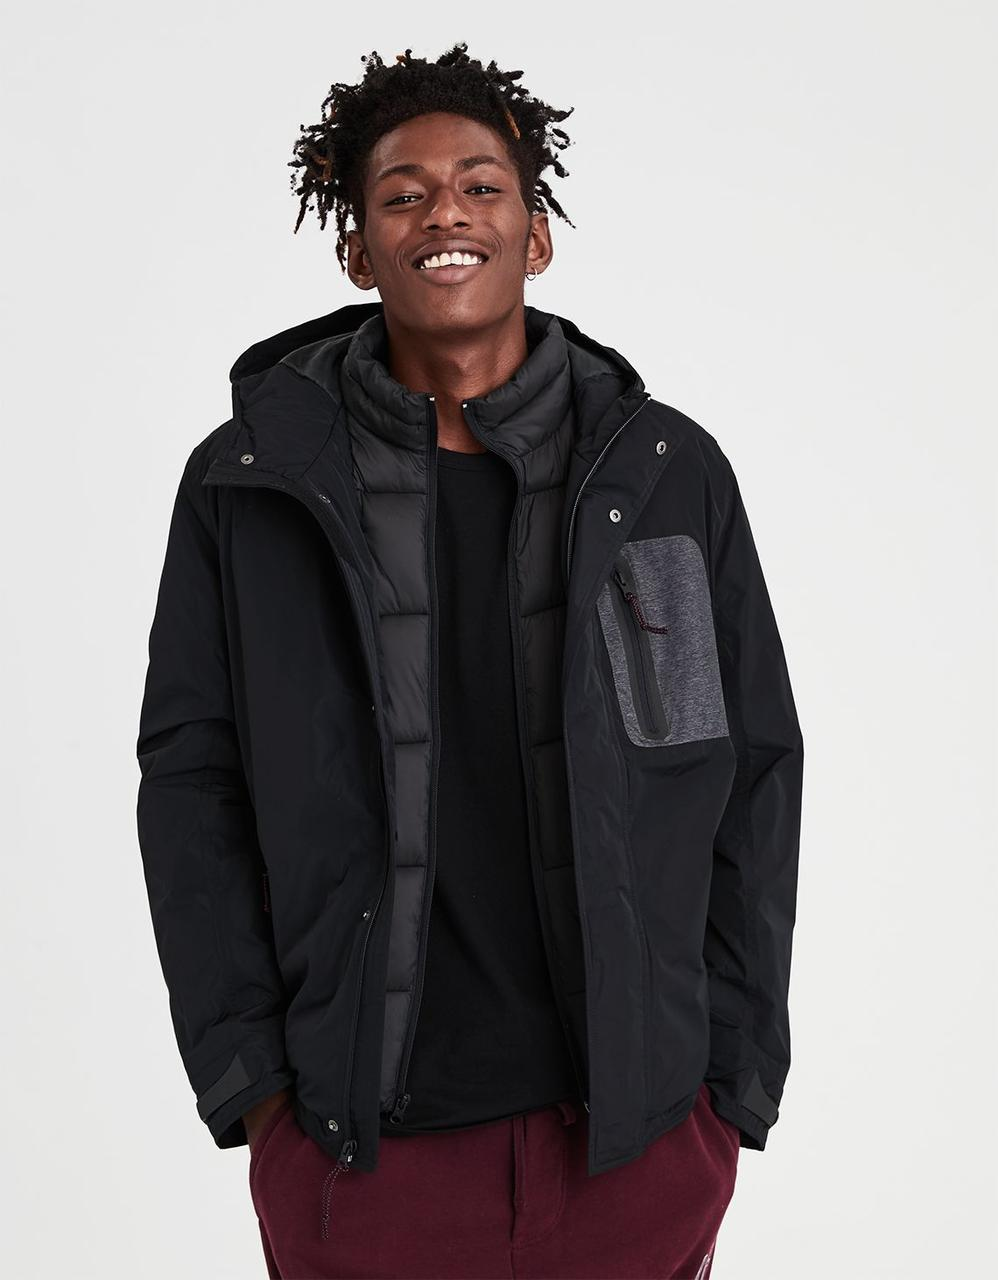 f471fcb20 American Eagle Jackets, AE ALL-CLIMATE JACKET for Men at Aeo.in